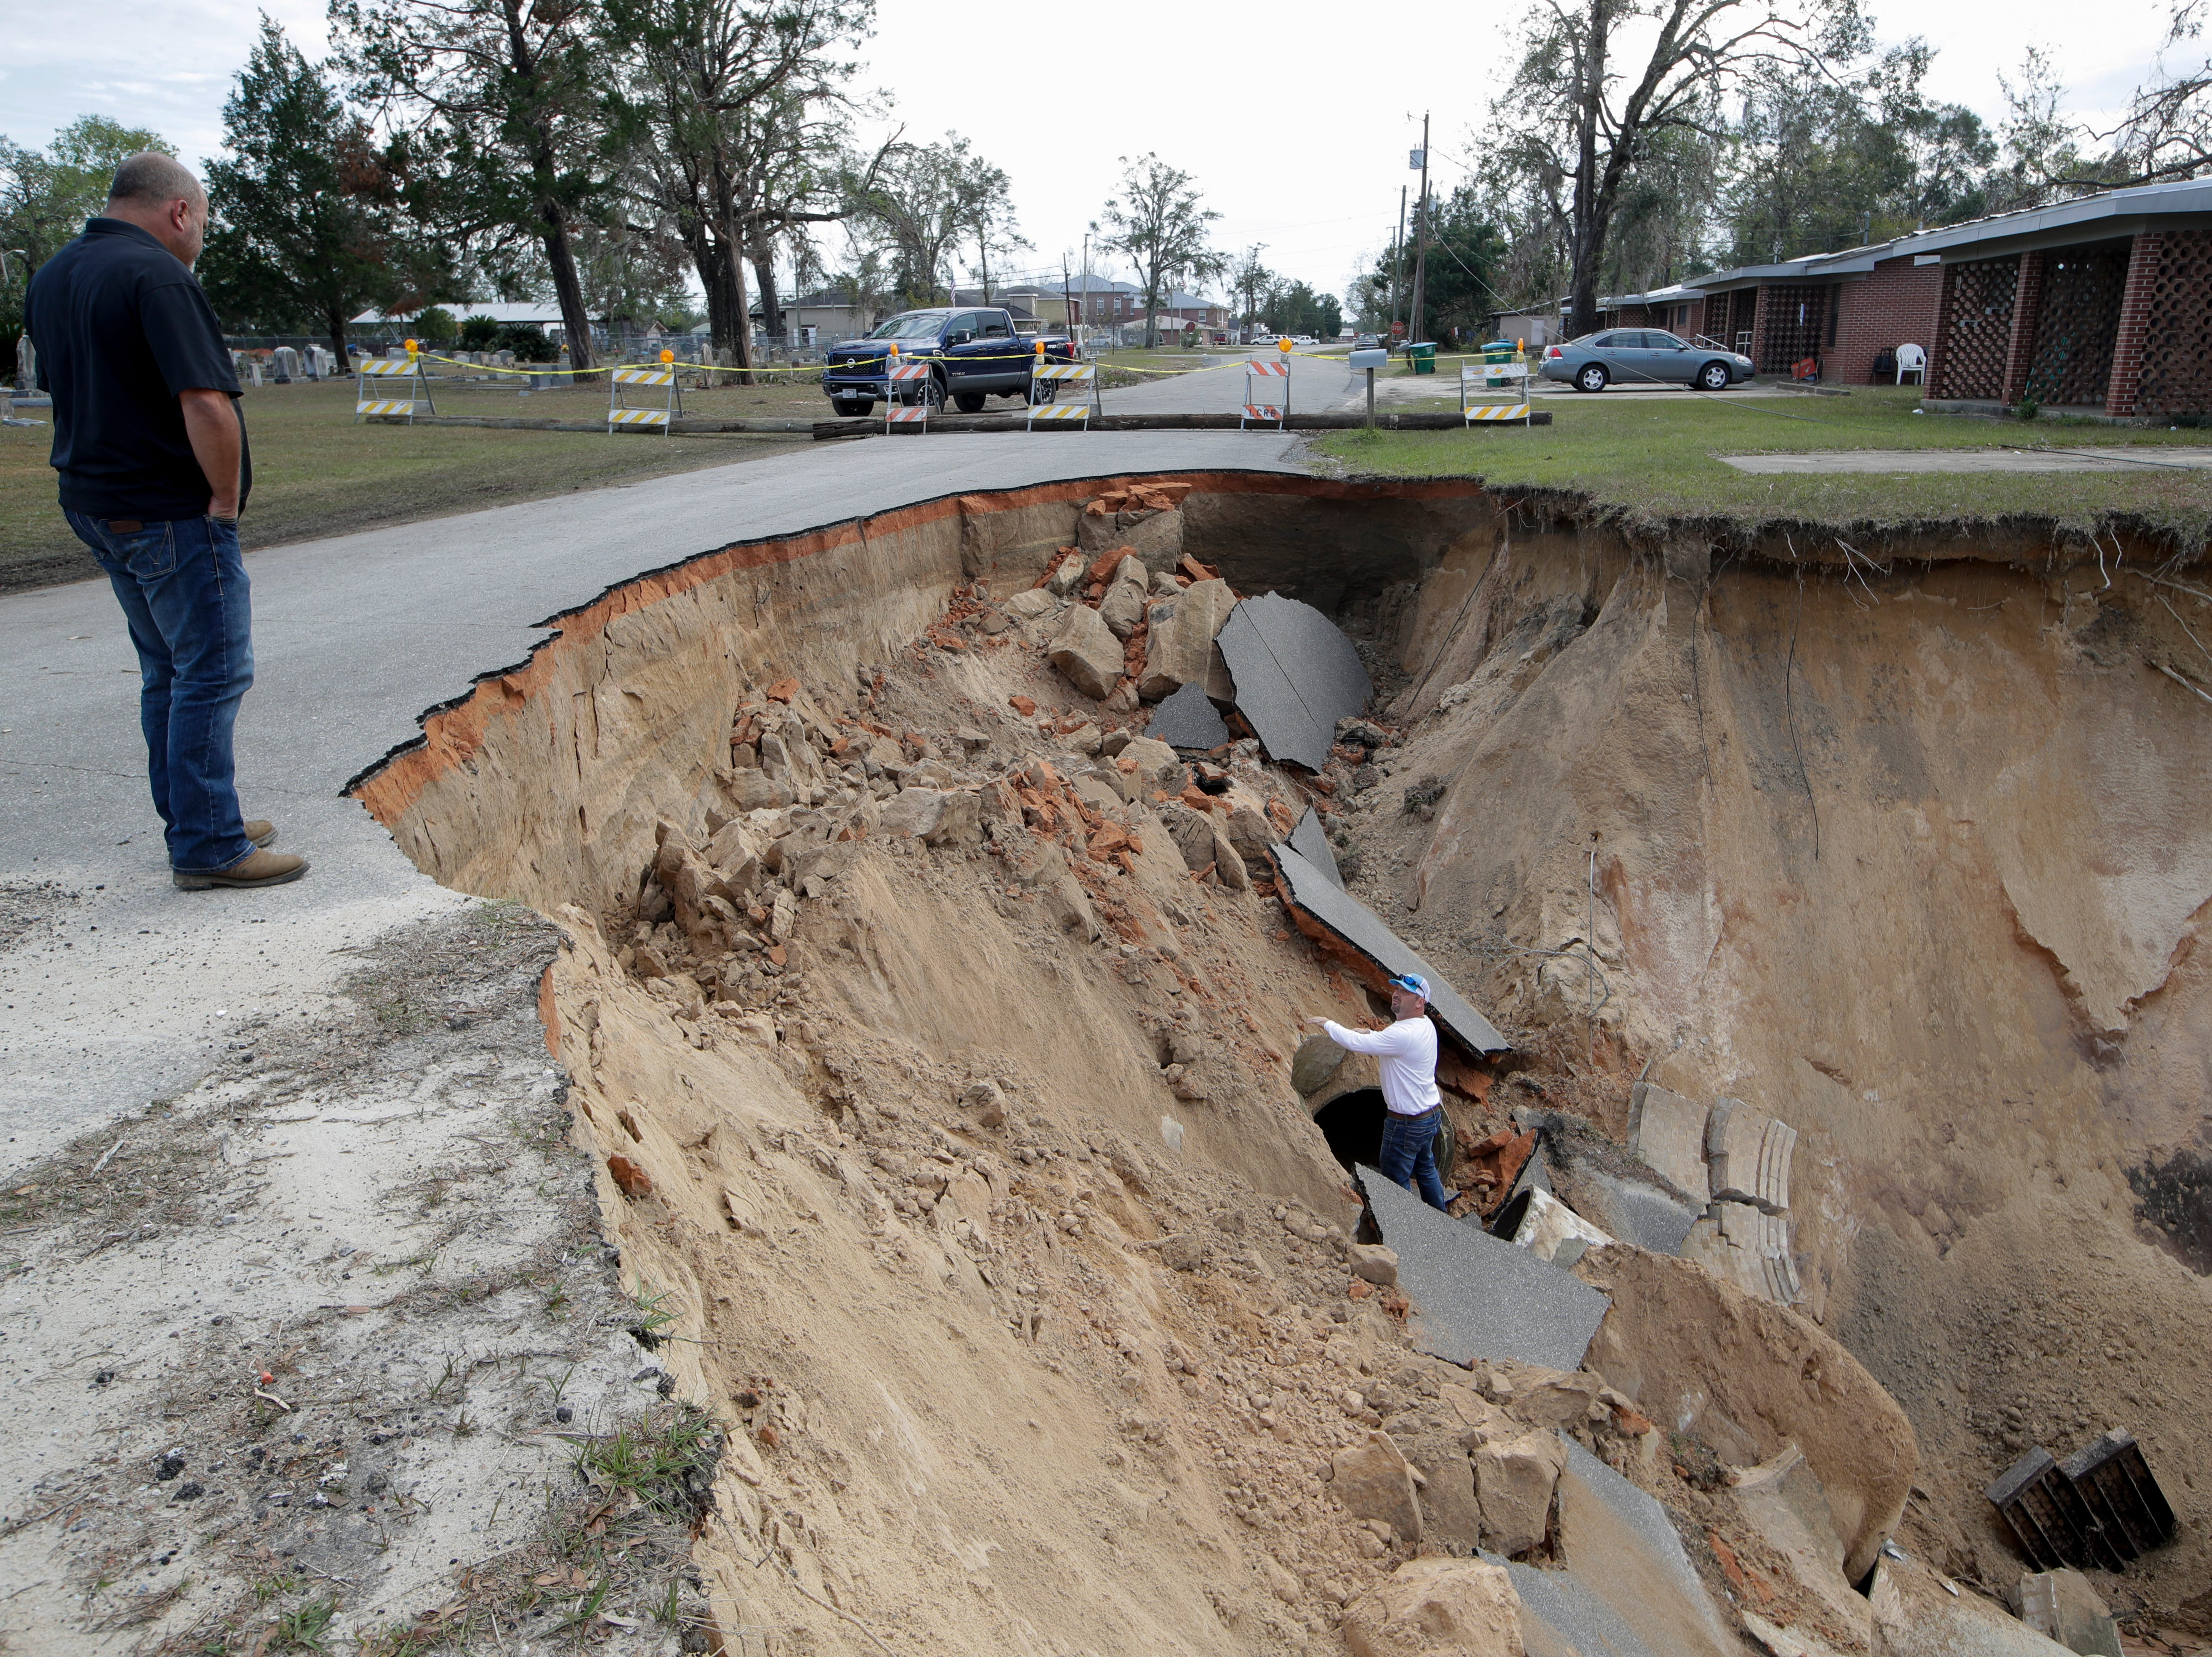 Hale Contracting Inc. Superintendent Jamie Stone, left and  Project Manger Del Tucker stop by the giant hole on Virginia G. Weaver Street in Bristol, Fla. that they will begin working to repair next week, Friday, Nov. 30, 2018.